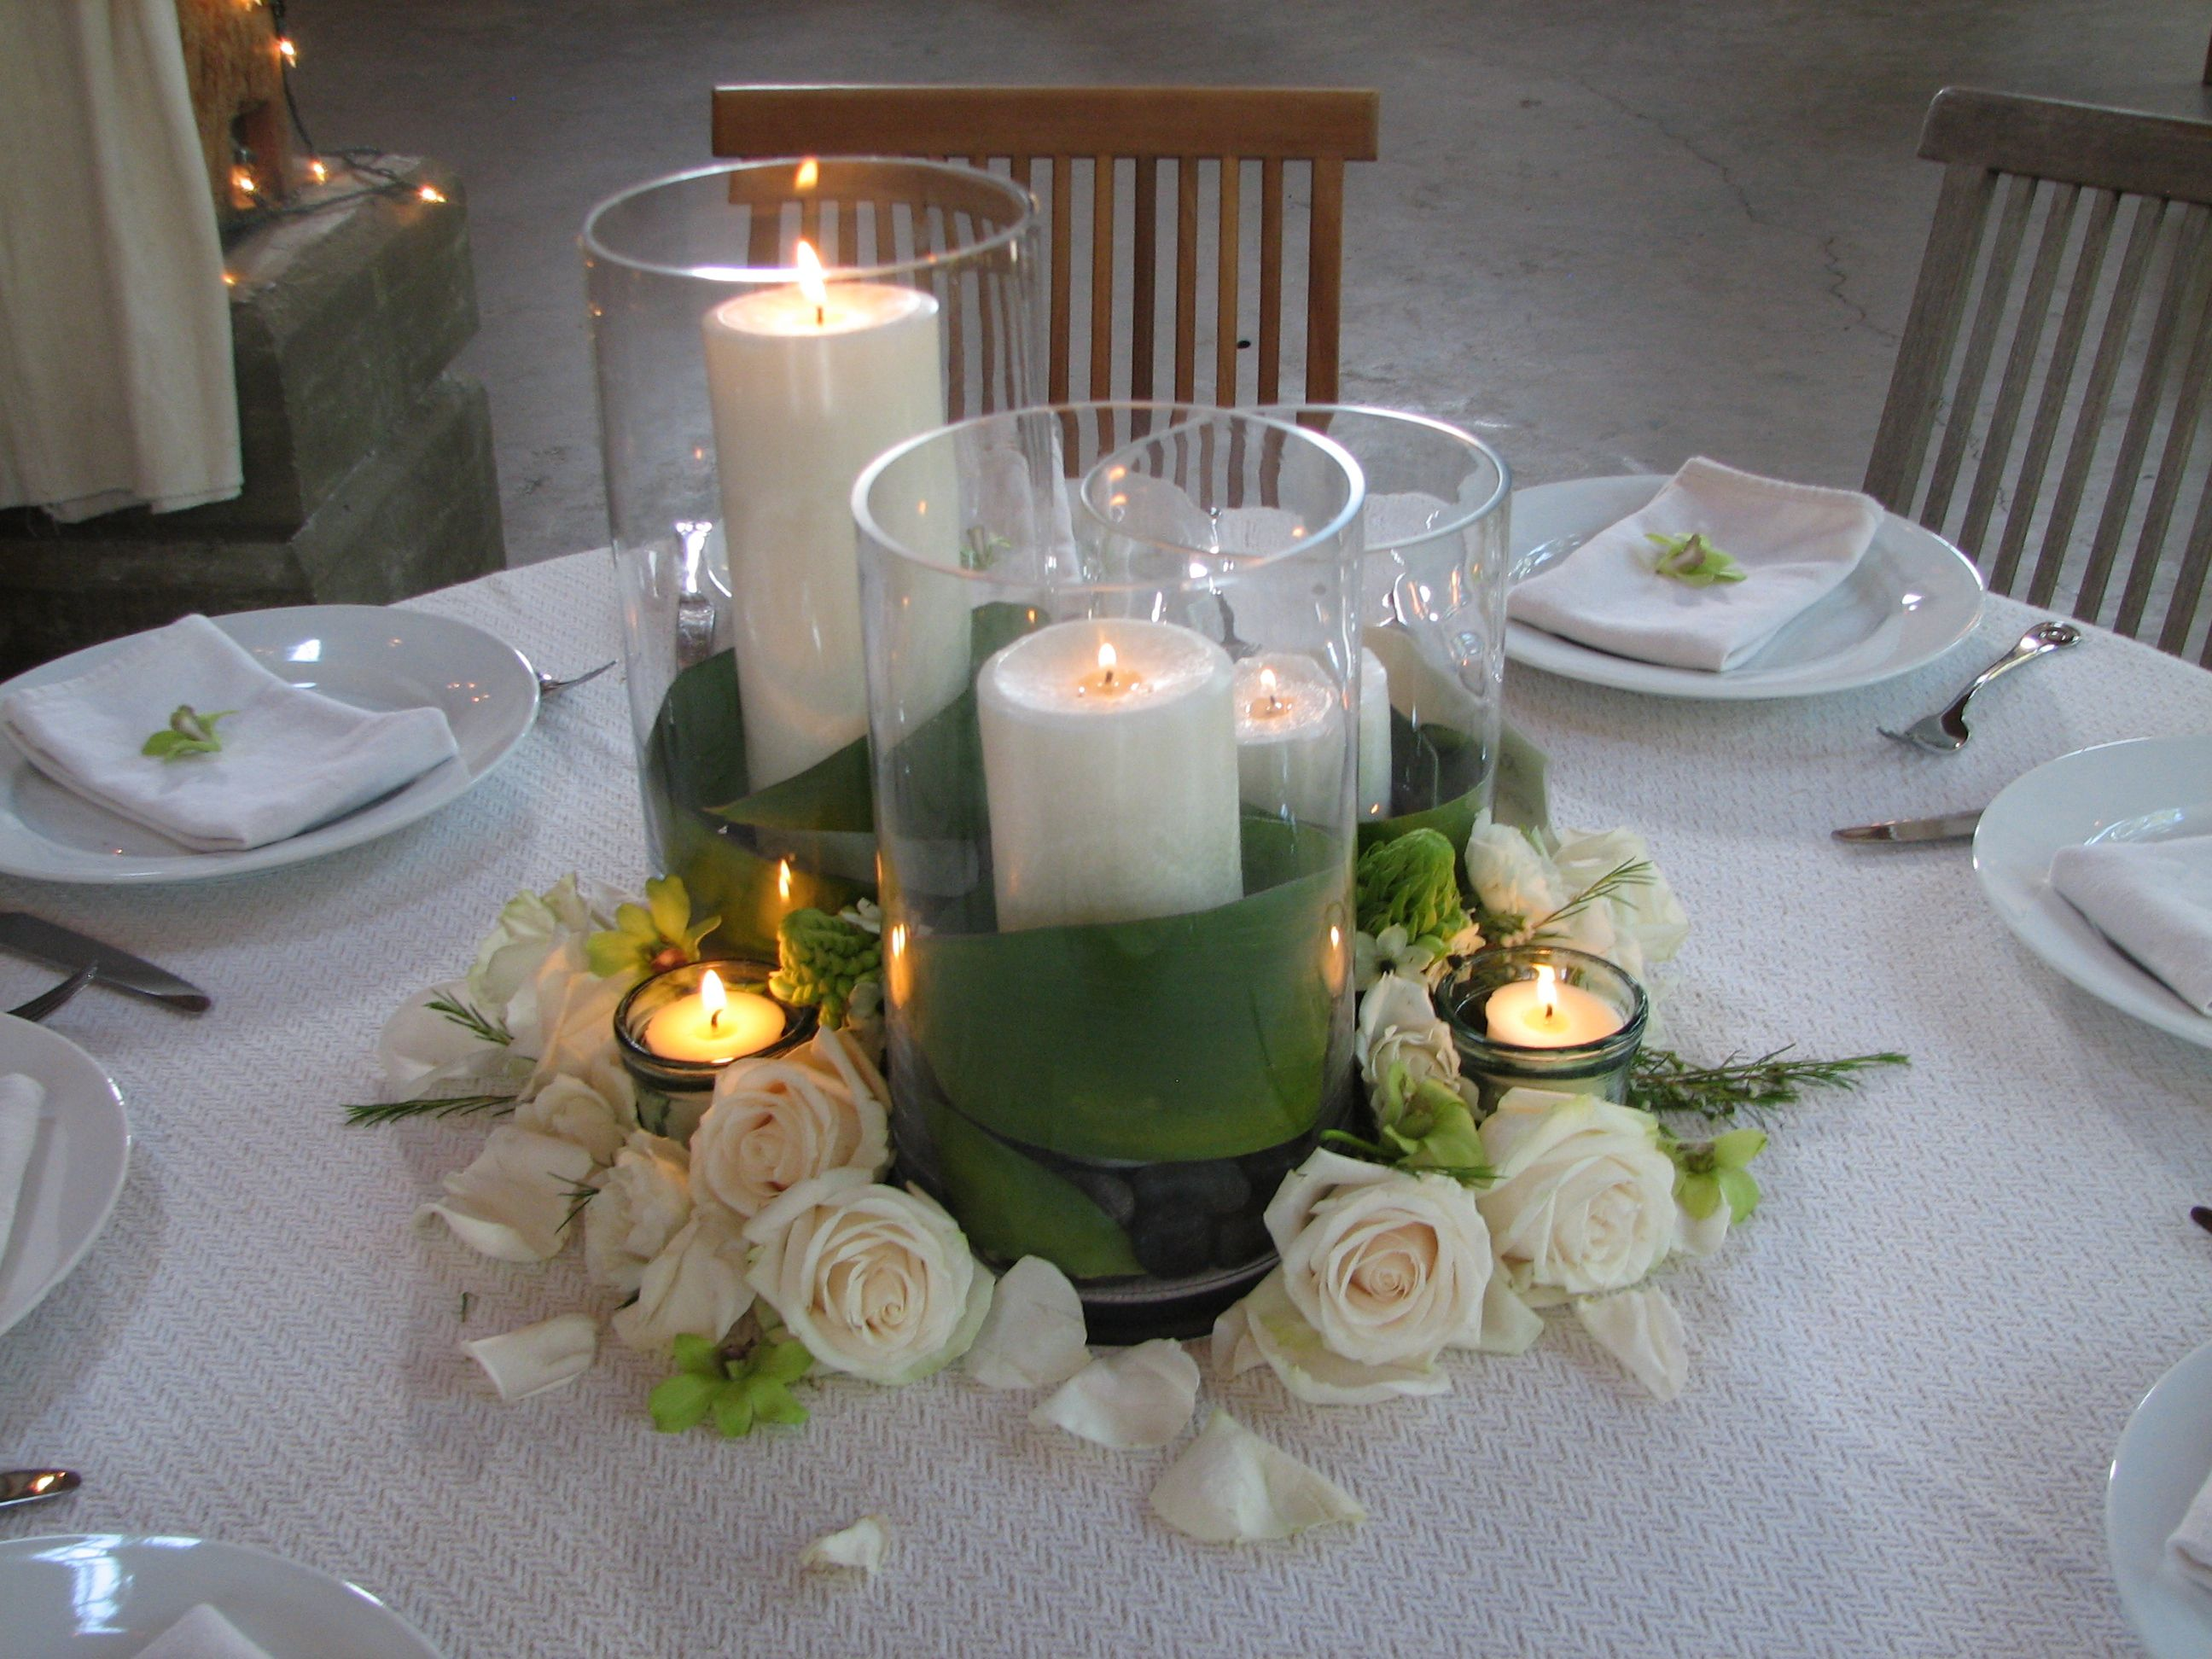 Trio of pillar candles in vases wrapped green ti leaves